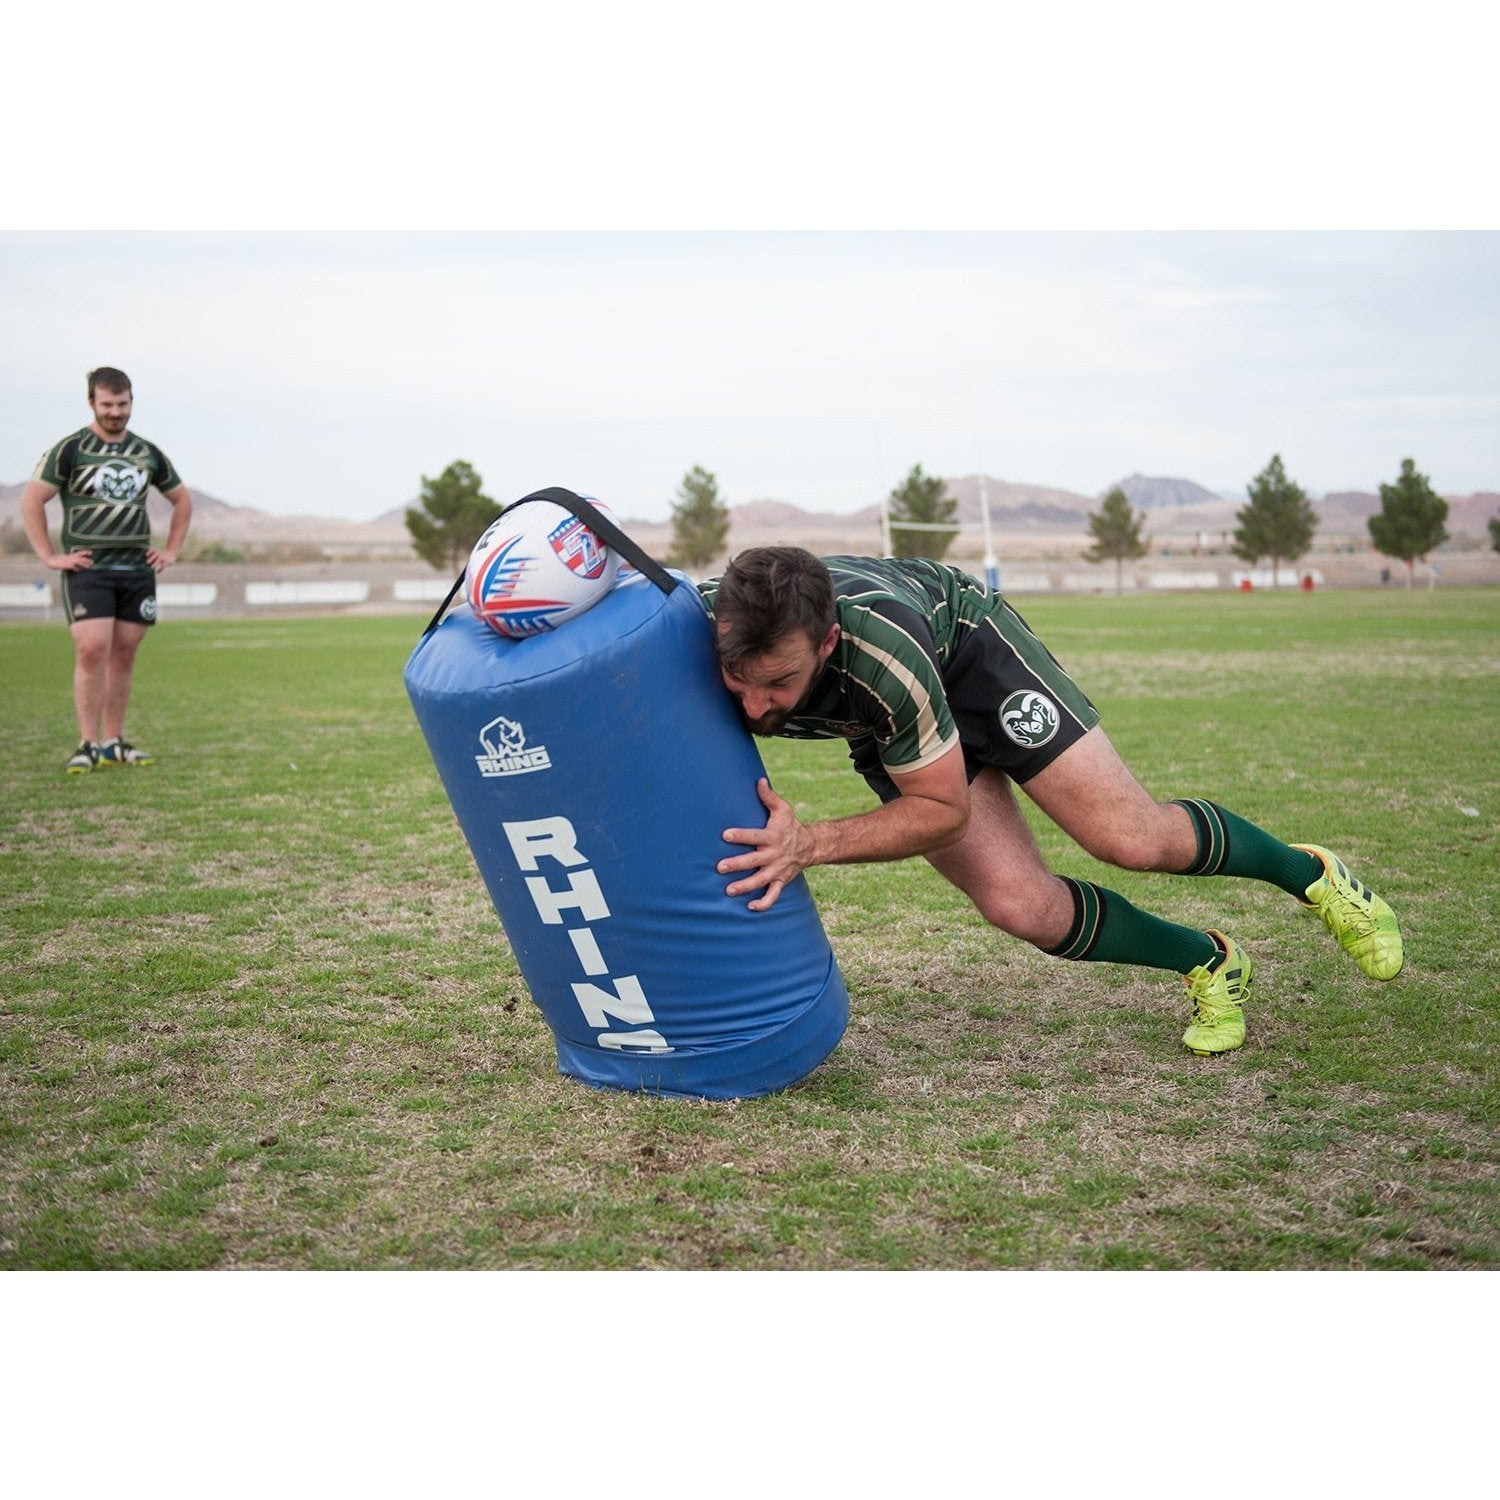 Rhino Rugby Arms Of Steel Tackle Bag - www.therugbyshop.com